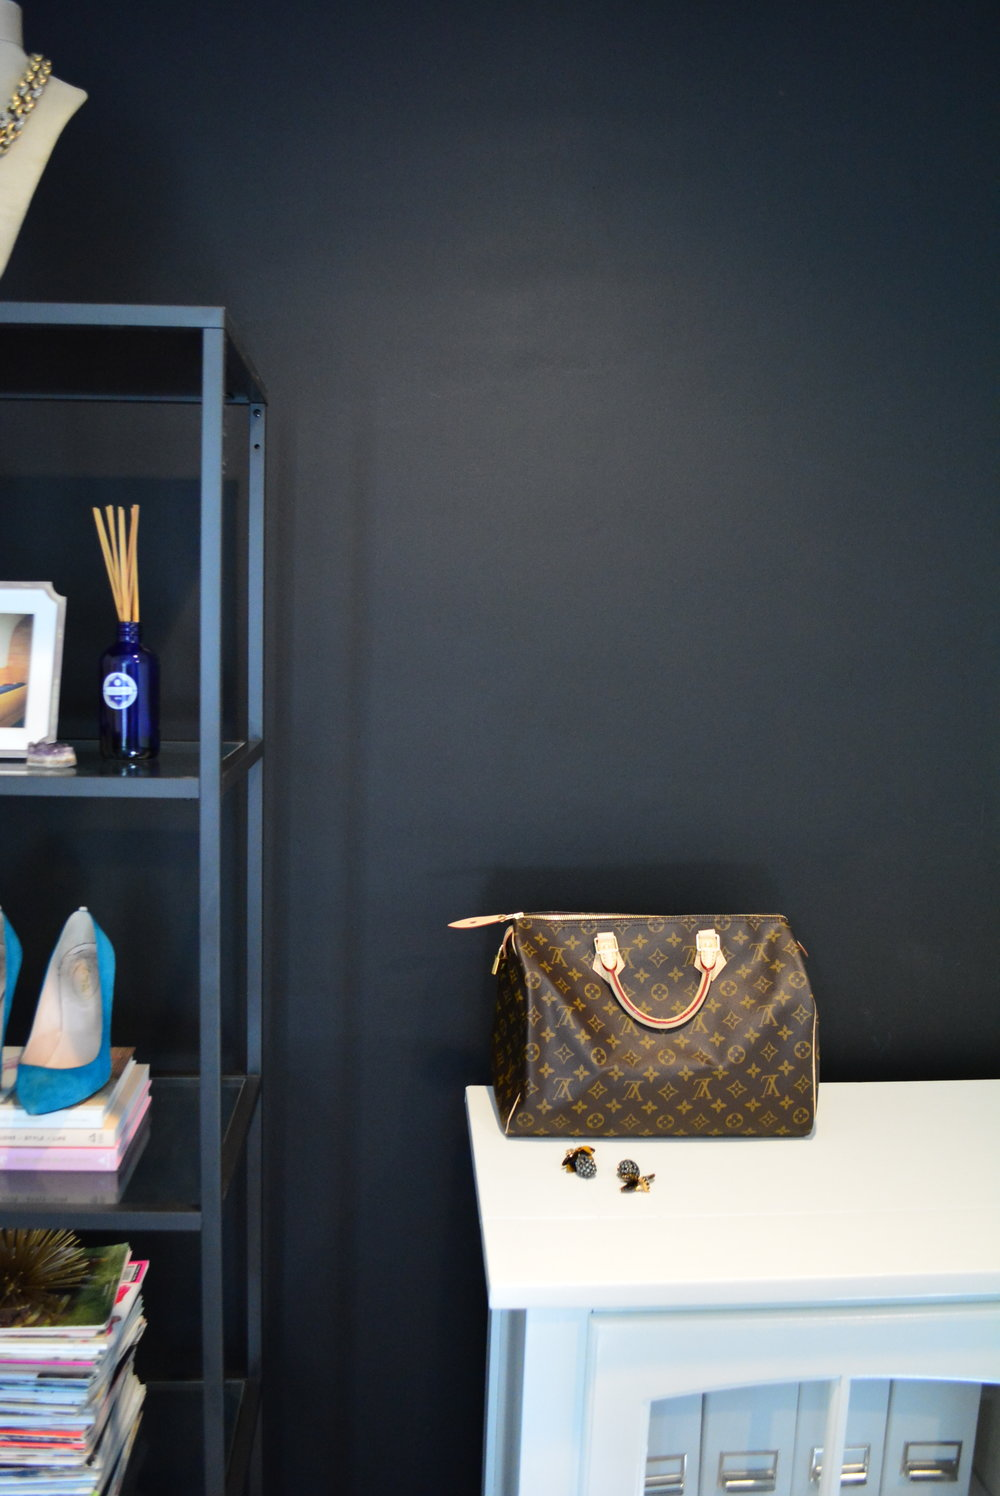 Louis Vuitton Speedy 35 in office